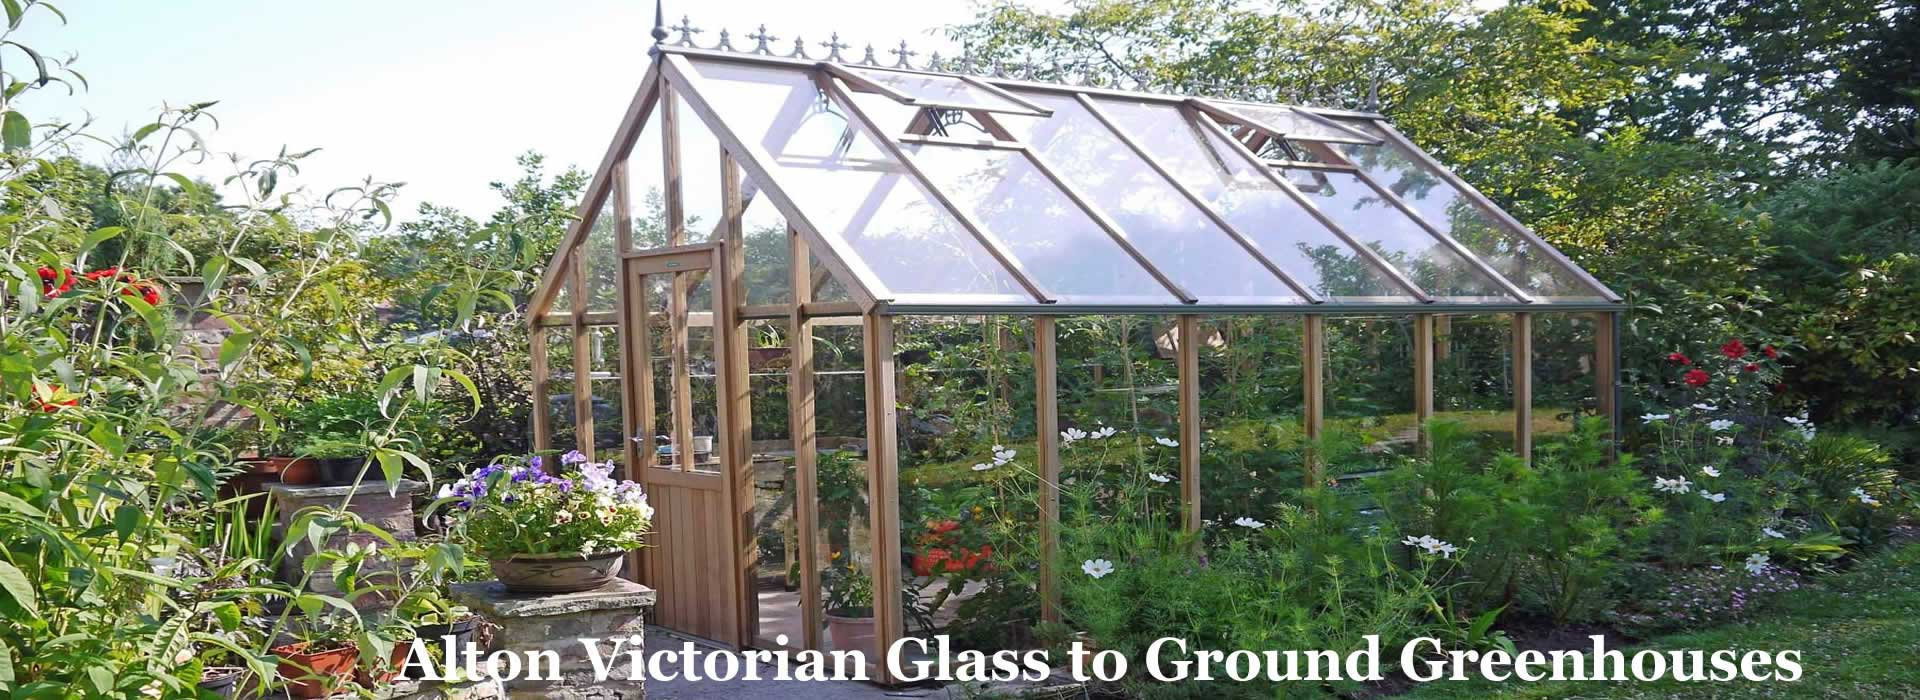 Alton Victorian Glass to Ground greenhouse.